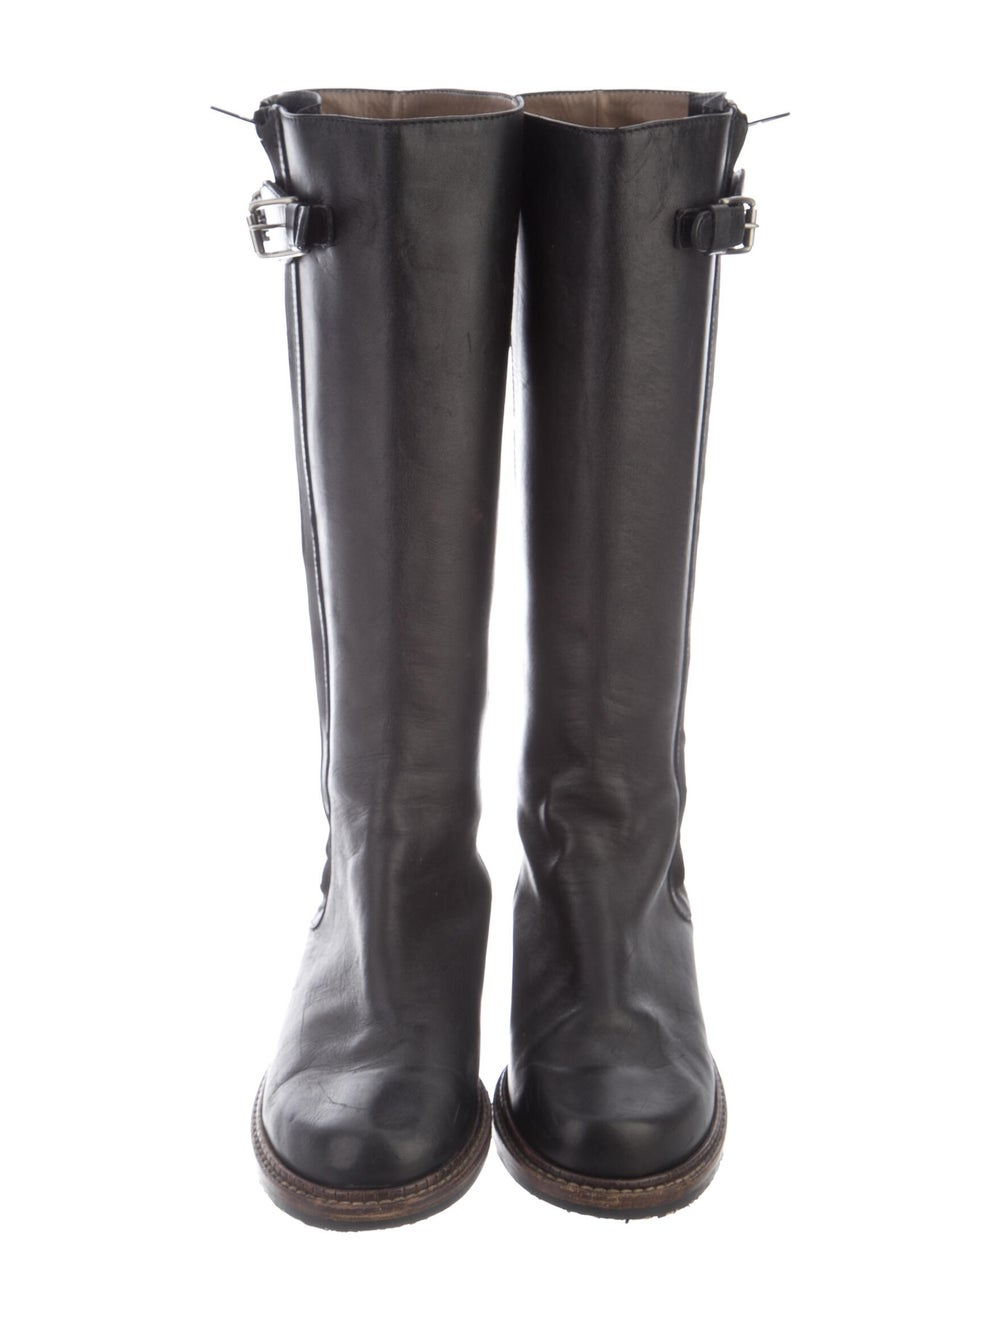 Marni Leather Riding Boots Black - image 3